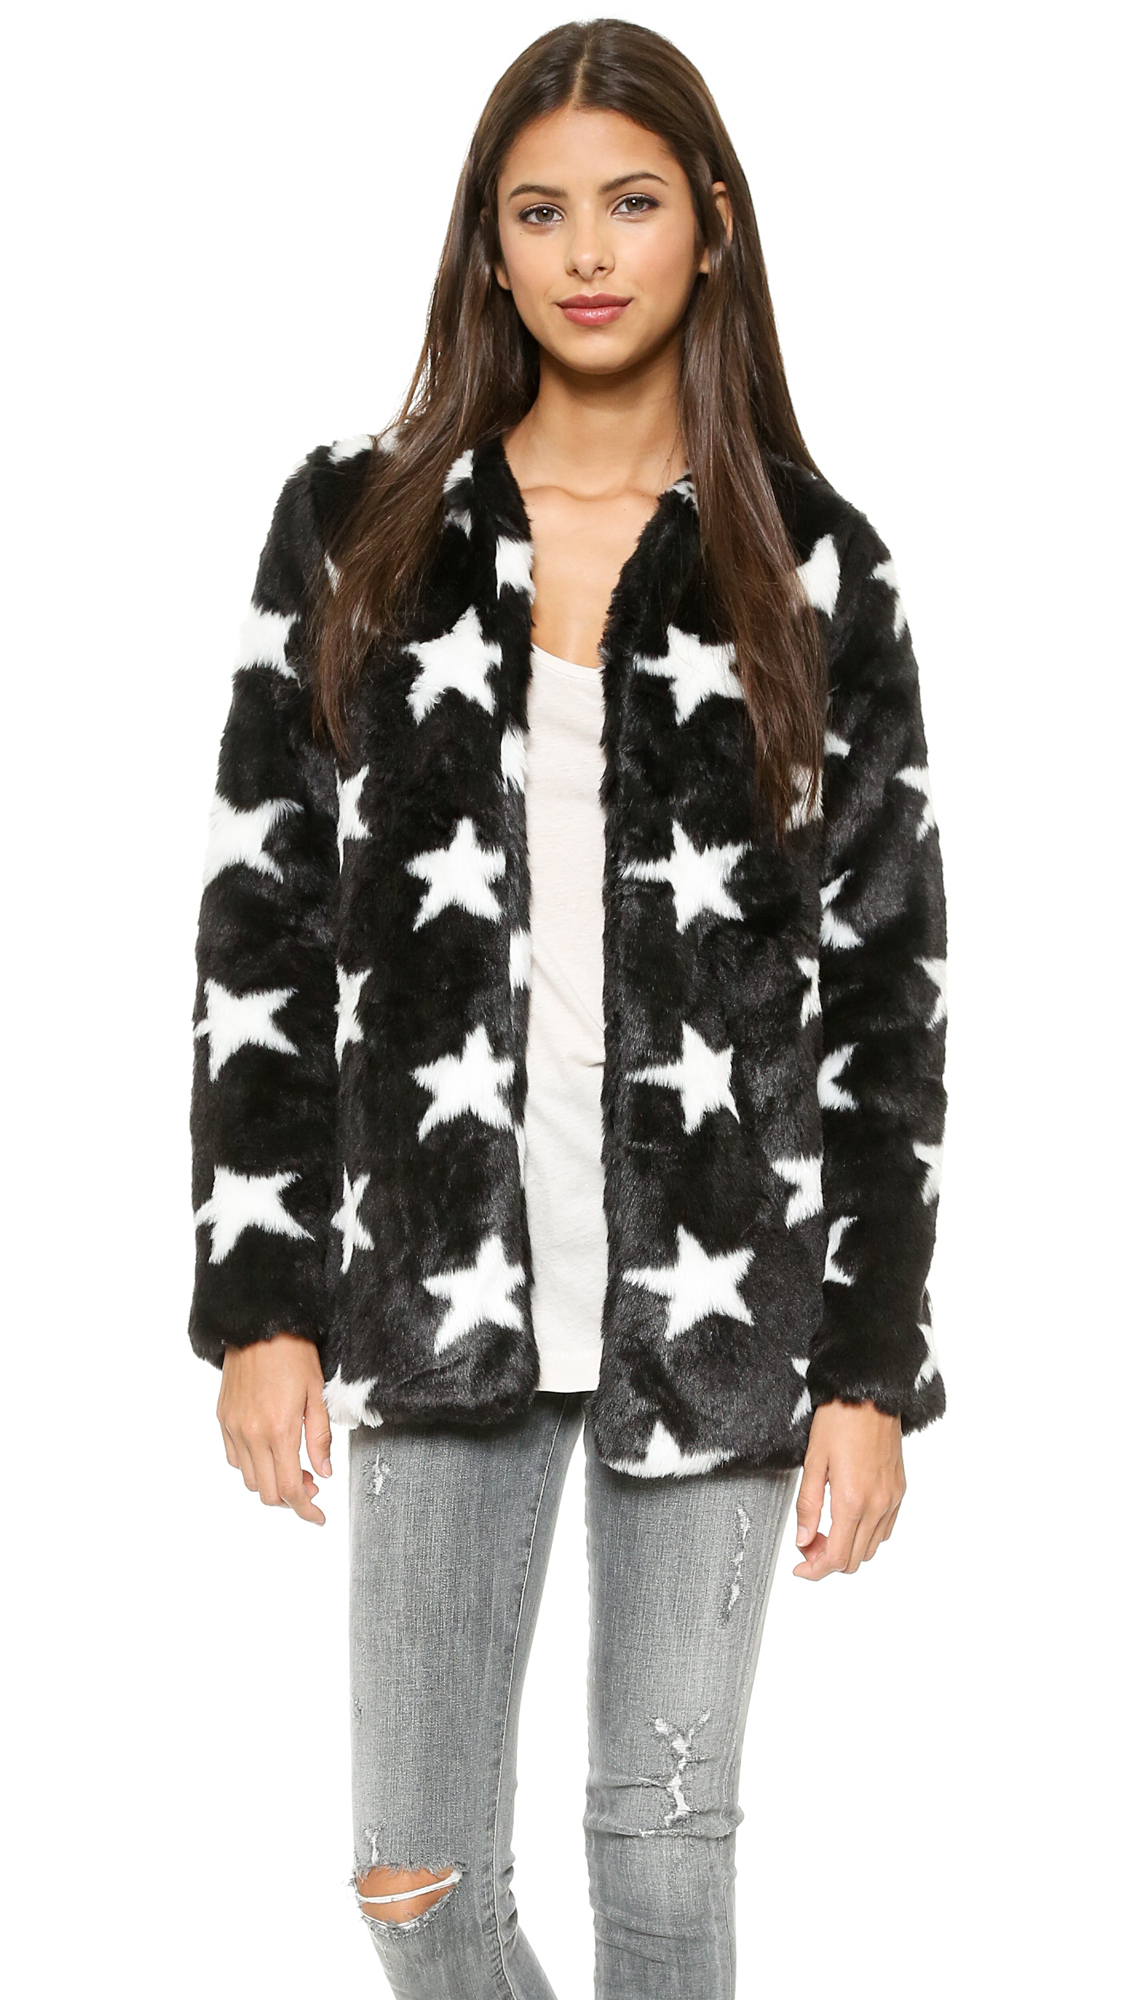 Re:named Star Faux Fur Coat - Black/White in Black | Lyst